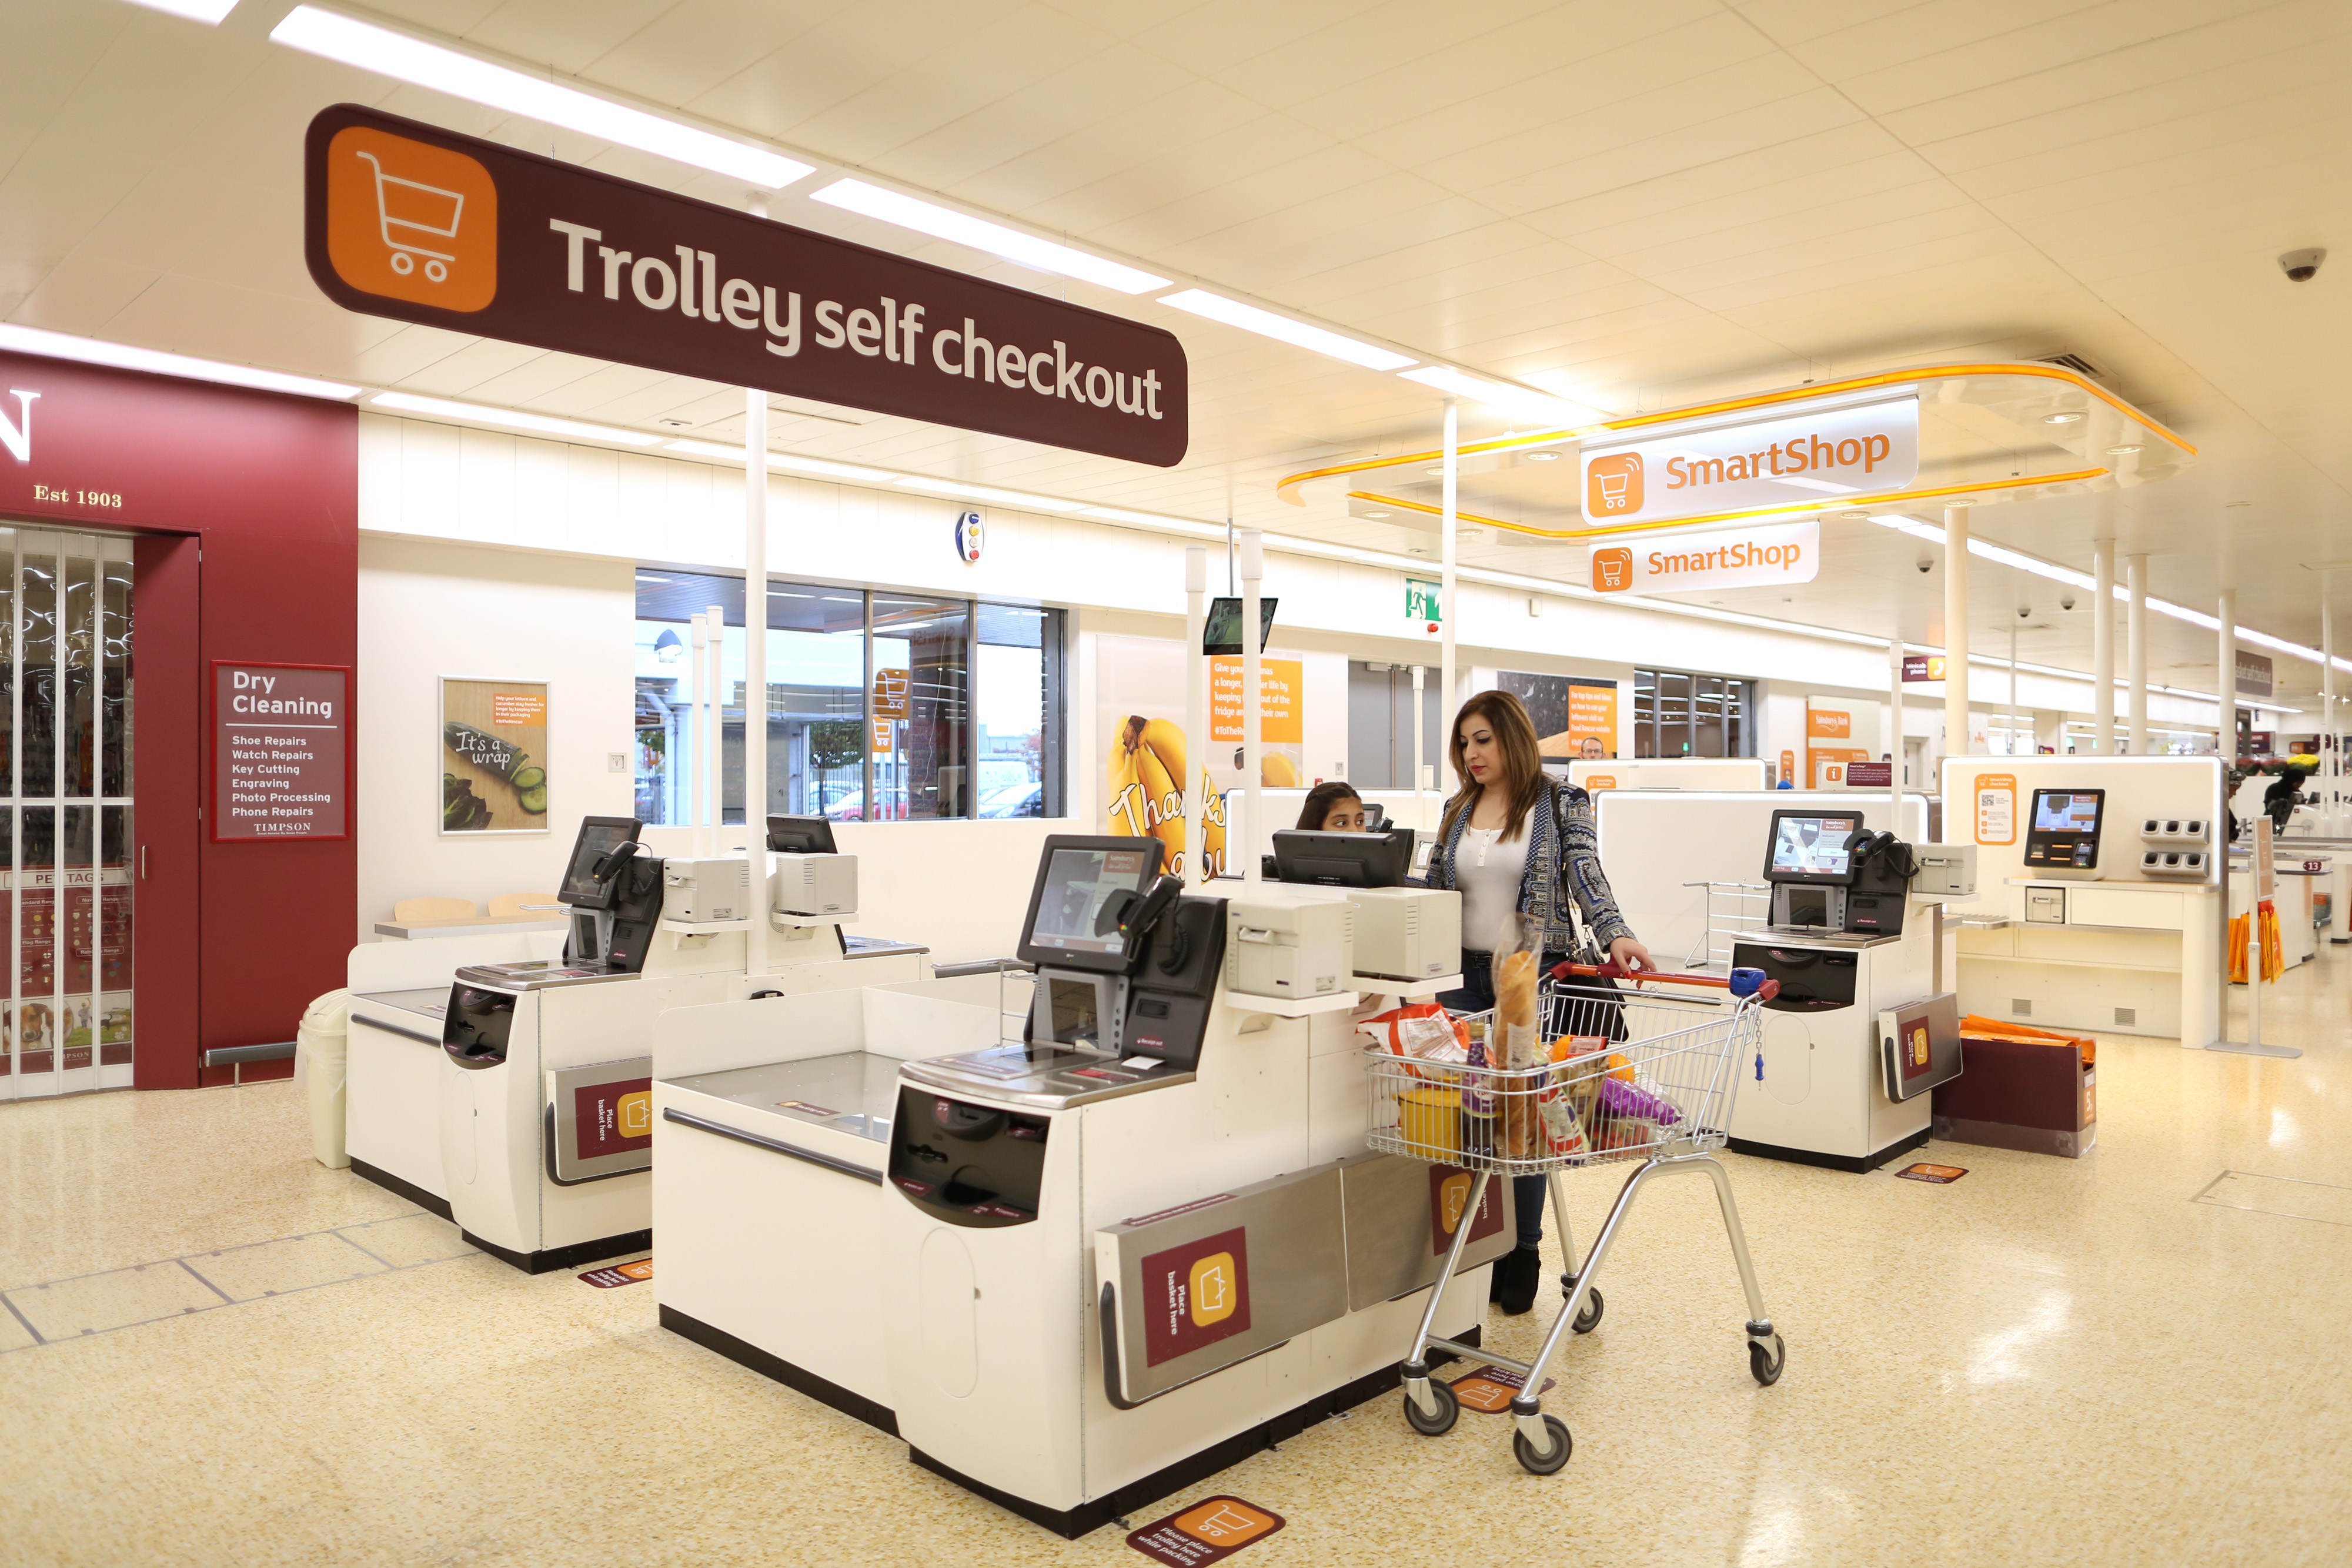 sainsbury s wants to make shopping quicker and easier with new